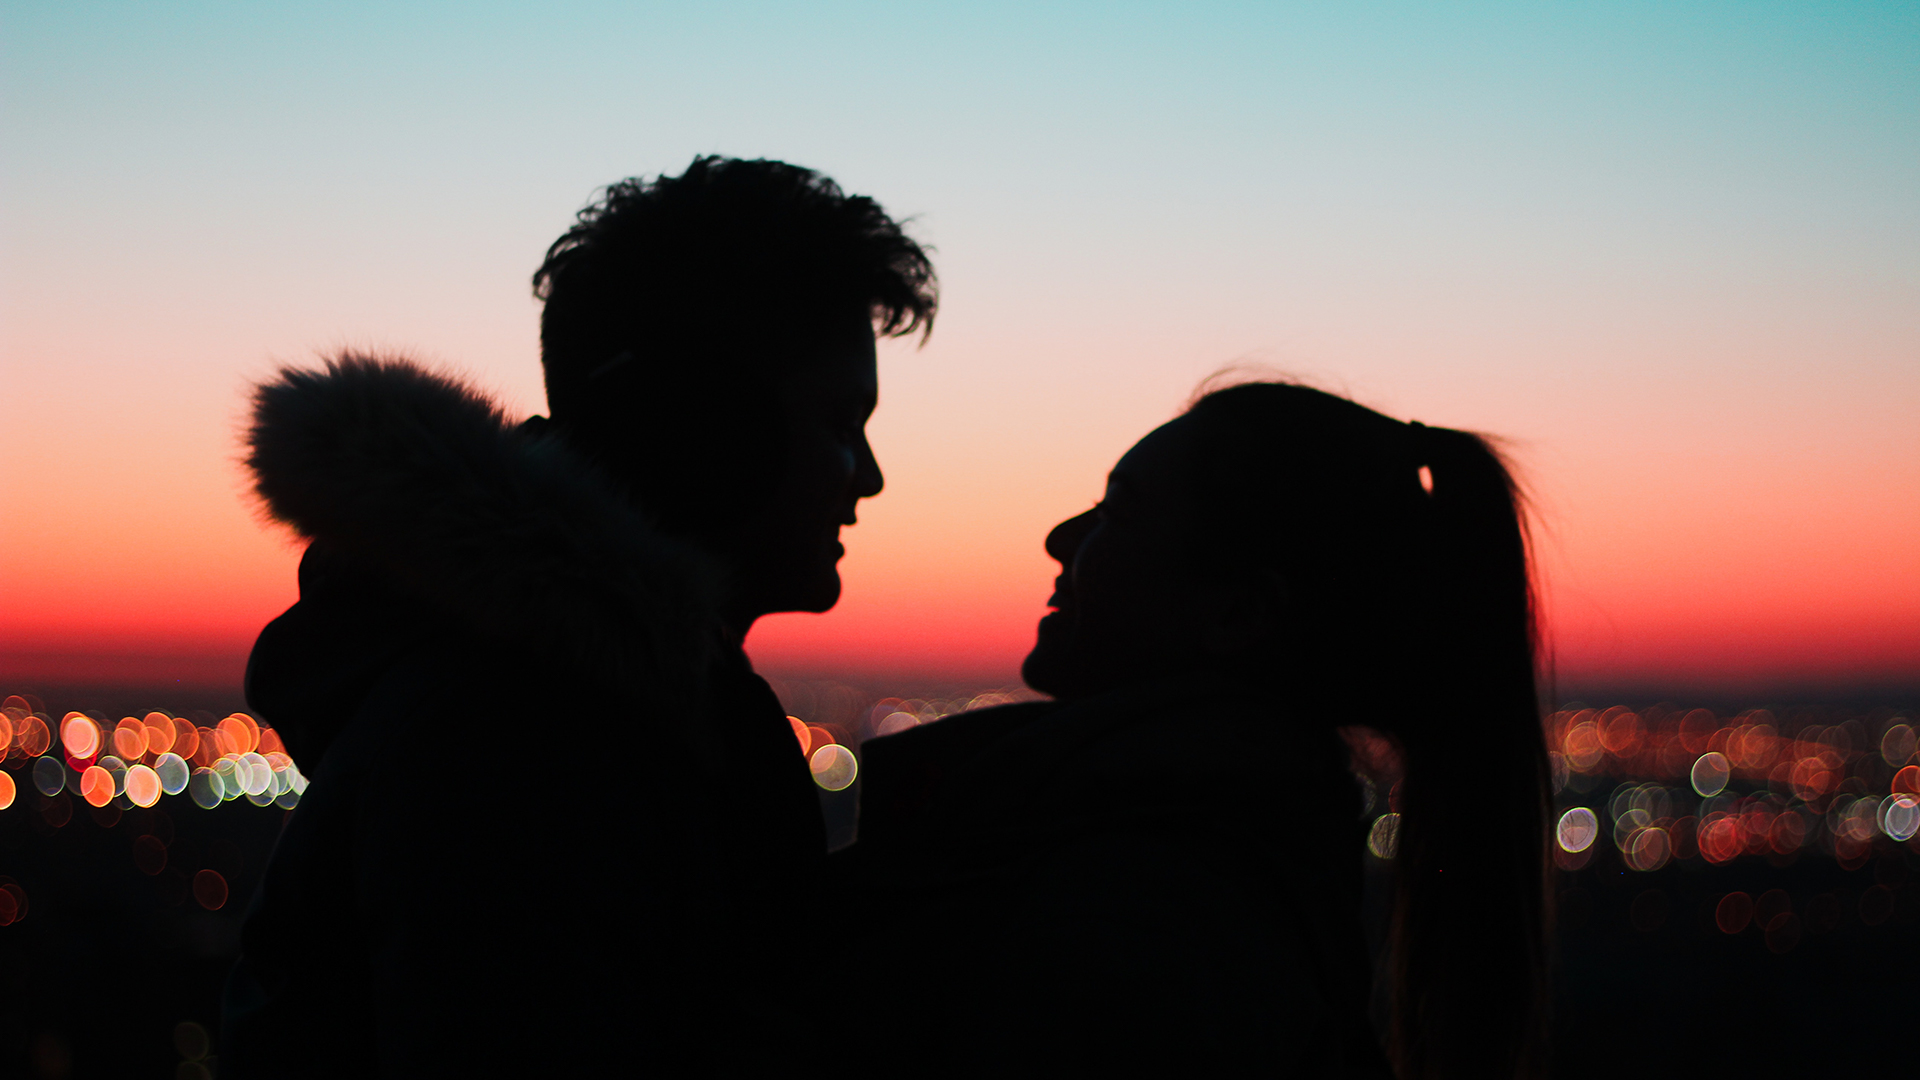 Two people embrace in the foreground of a cityscape